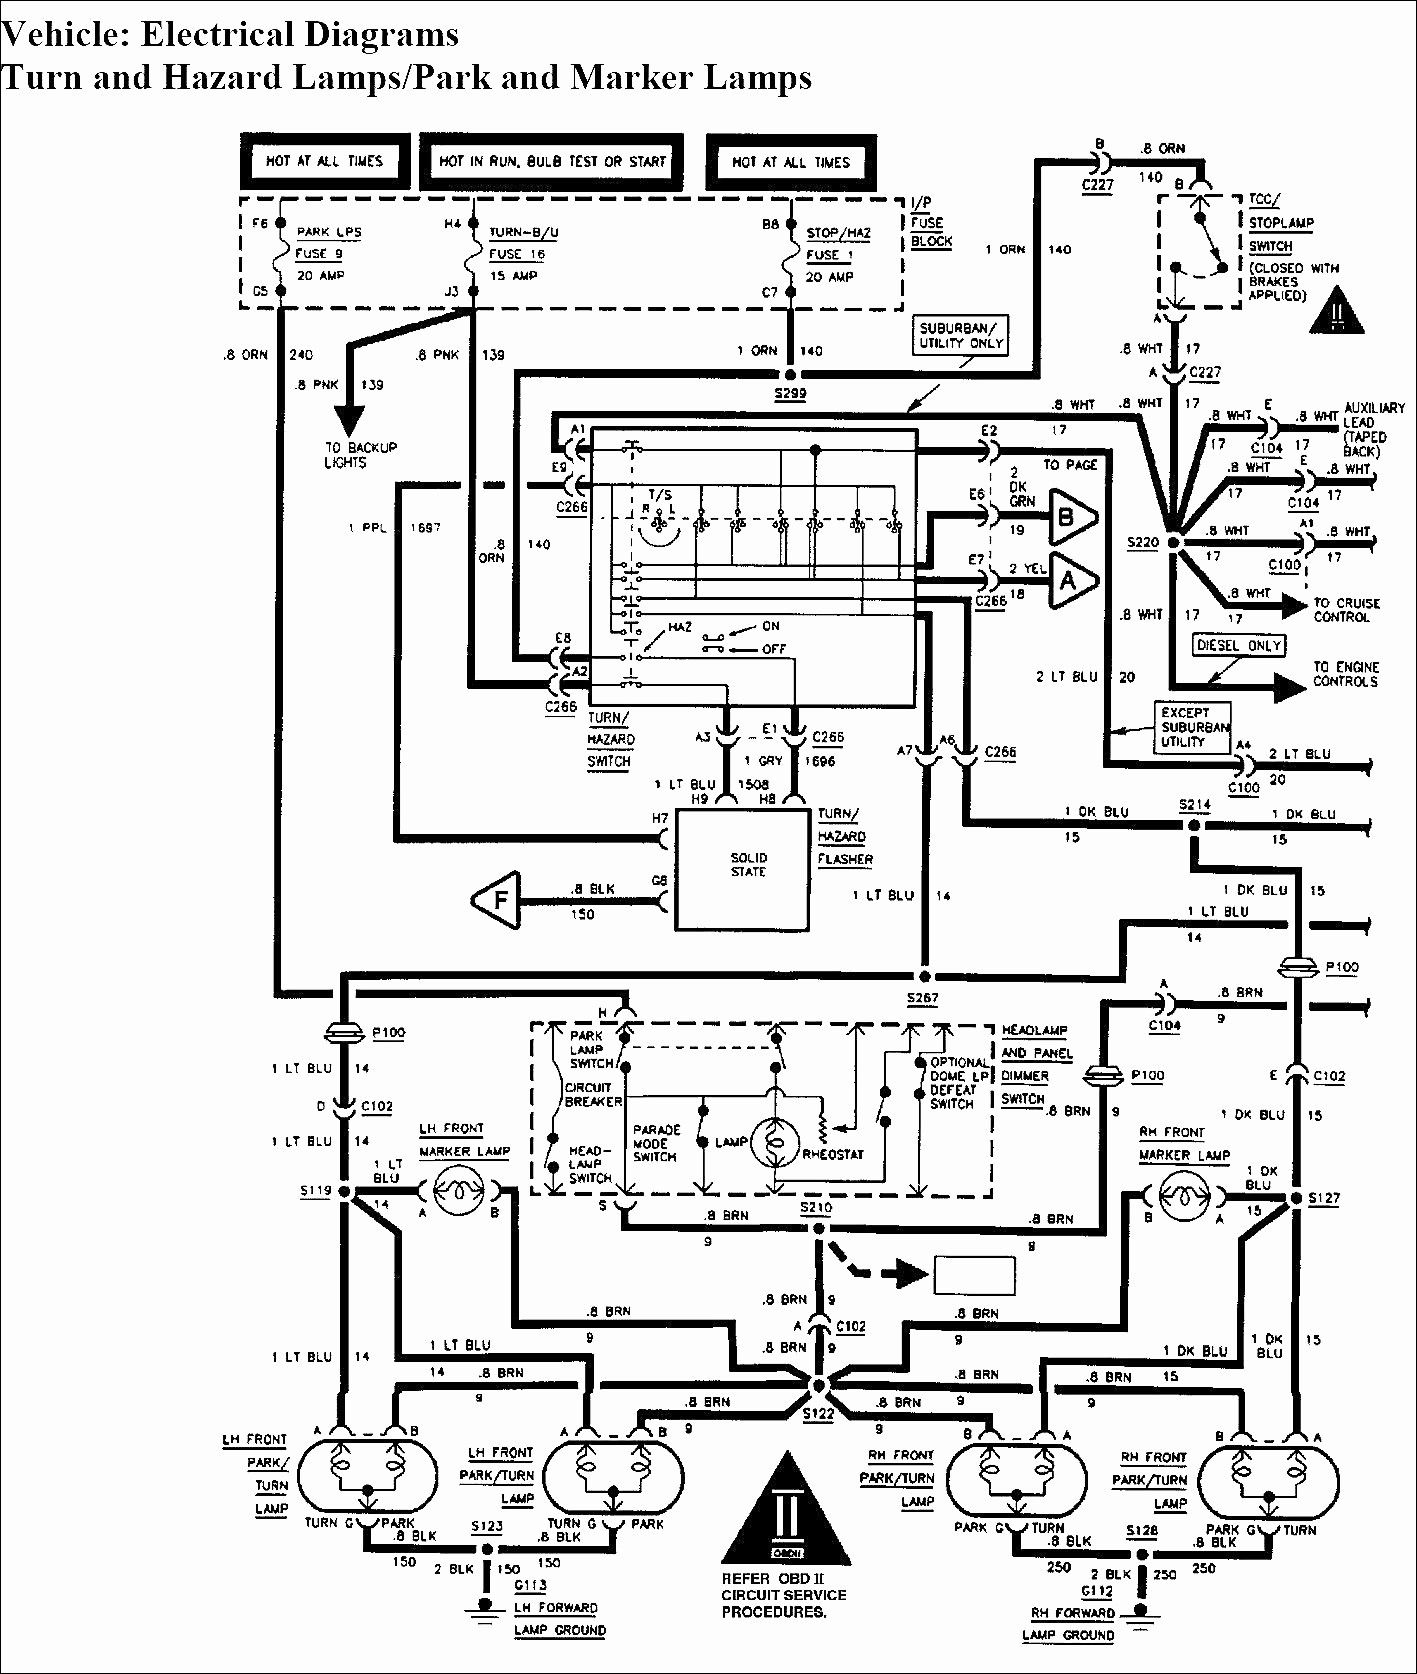 [CSDW_4250]   RV_5967] Wiring Diagram For Chevy S10 Download Diagram | 1998 Chevrolet S10 Wiring Diagram |  | Favo Inrebe Mohammedshrine Librar Wiring 101